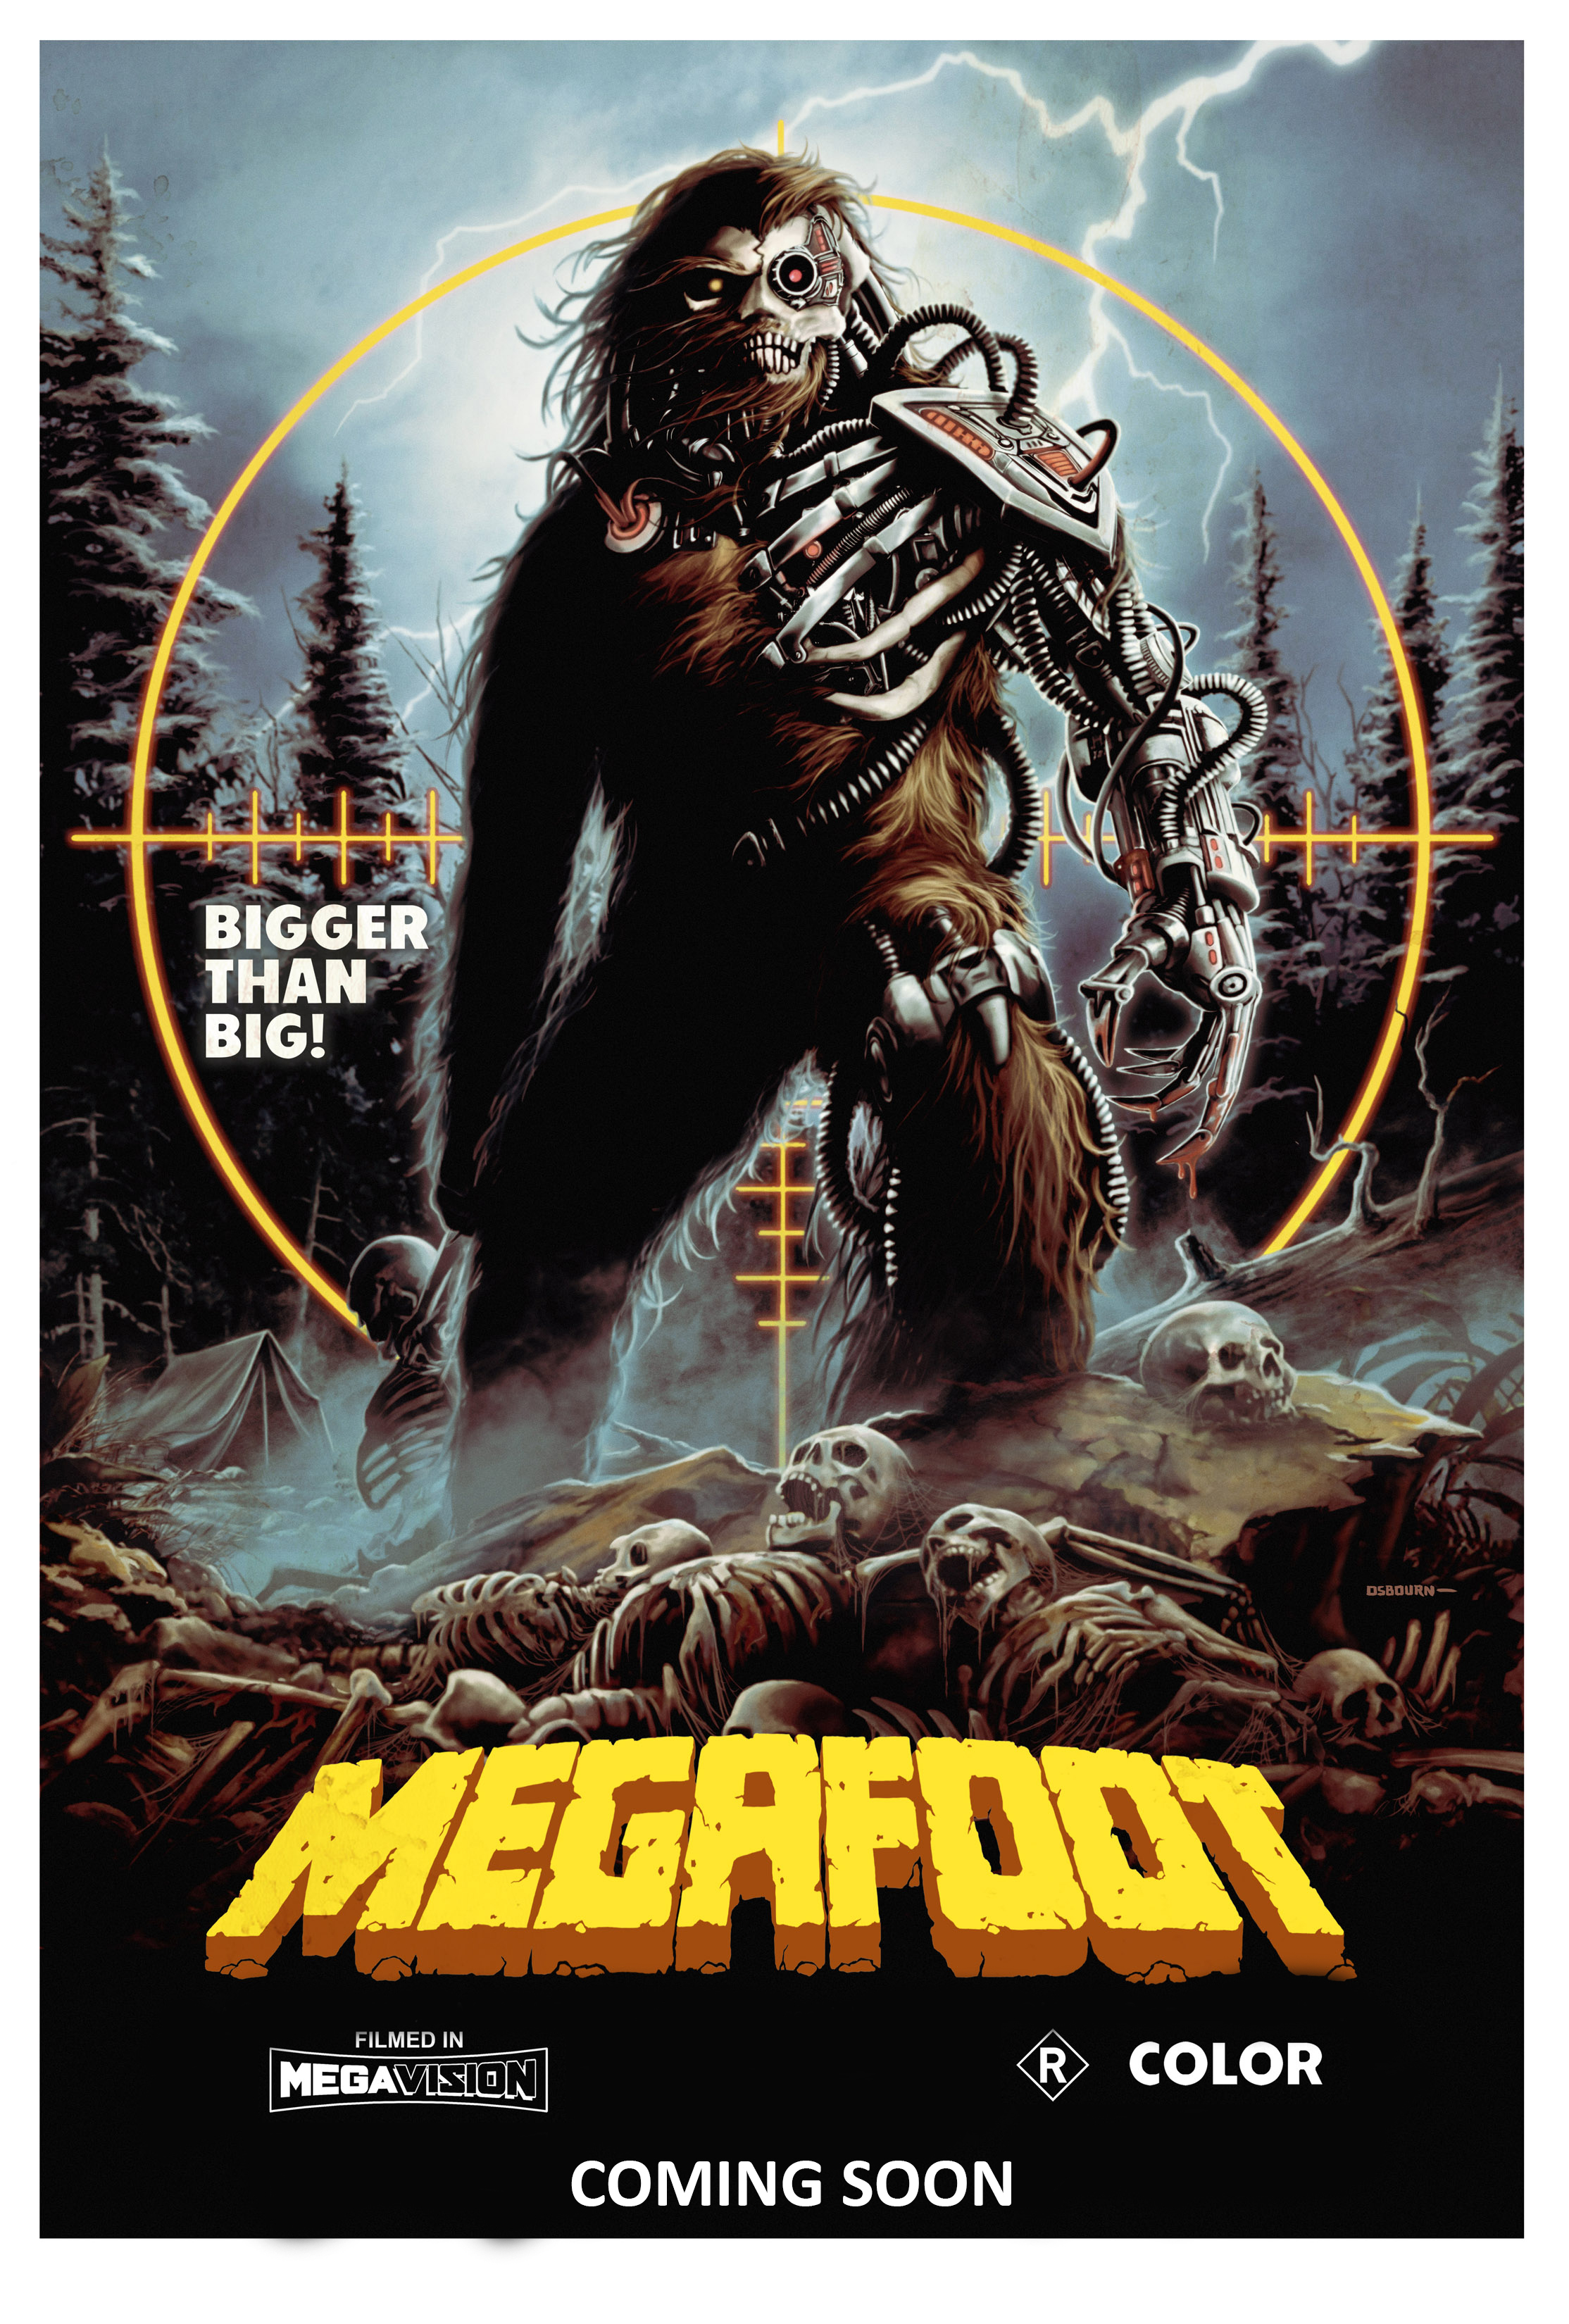 20140210190747-MEGAFOOT-poster-artwork_with_no_credit_block